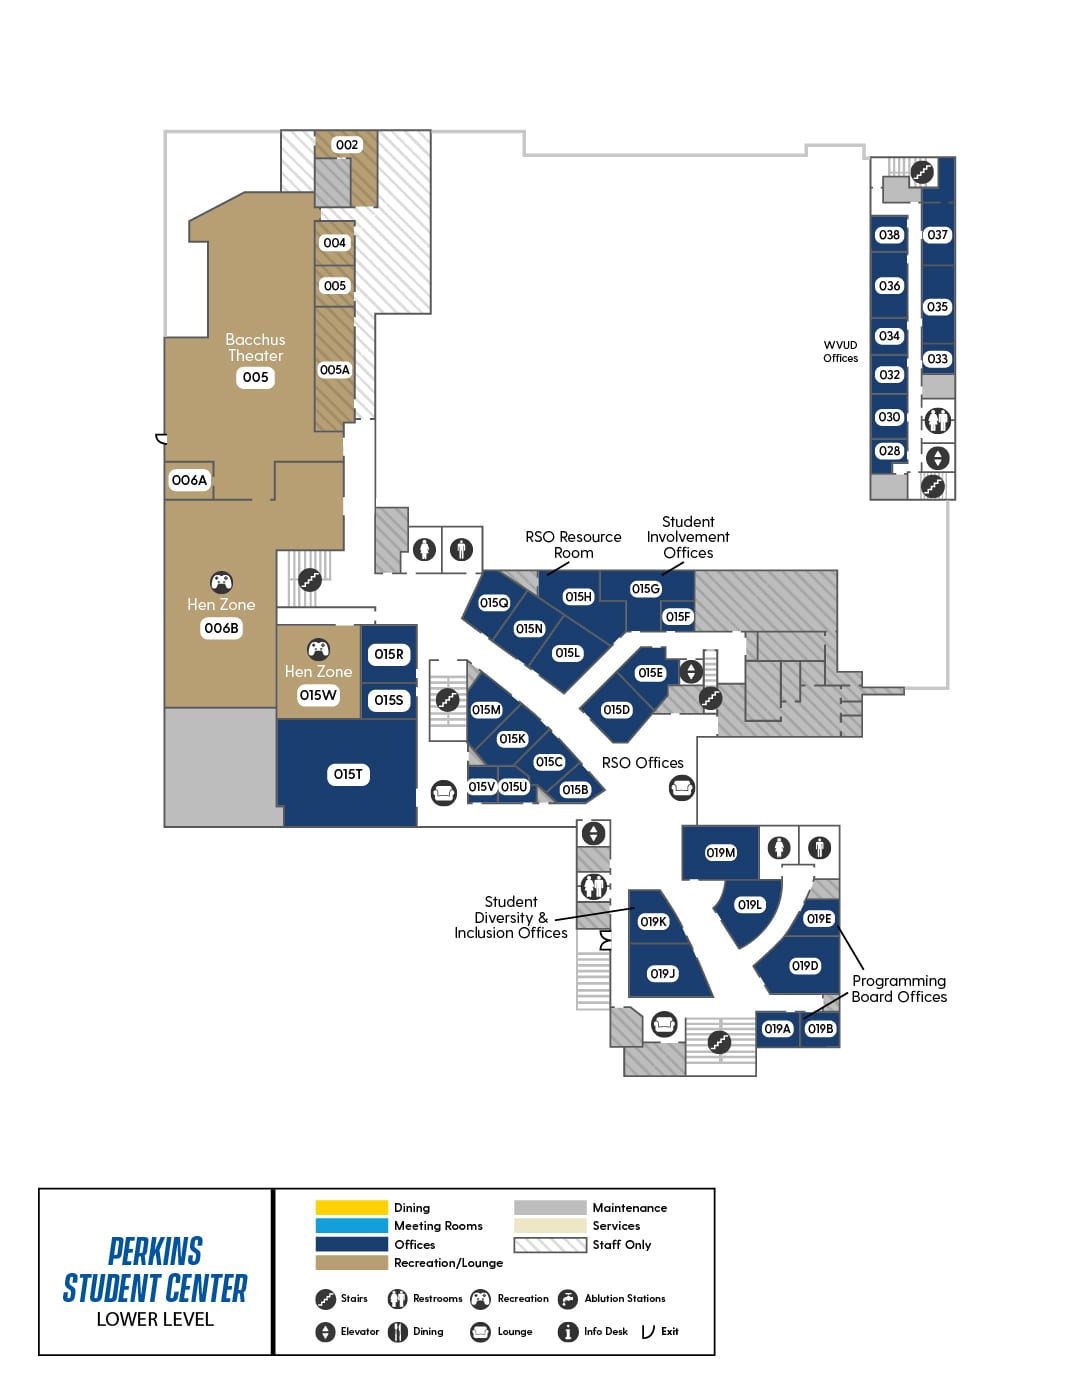 Perkins Lower Level Map, showing WVUD, Bacchus Theater, Student Involvement Offices, Programming Board Office, and Student Diversity & Inclusion Offices